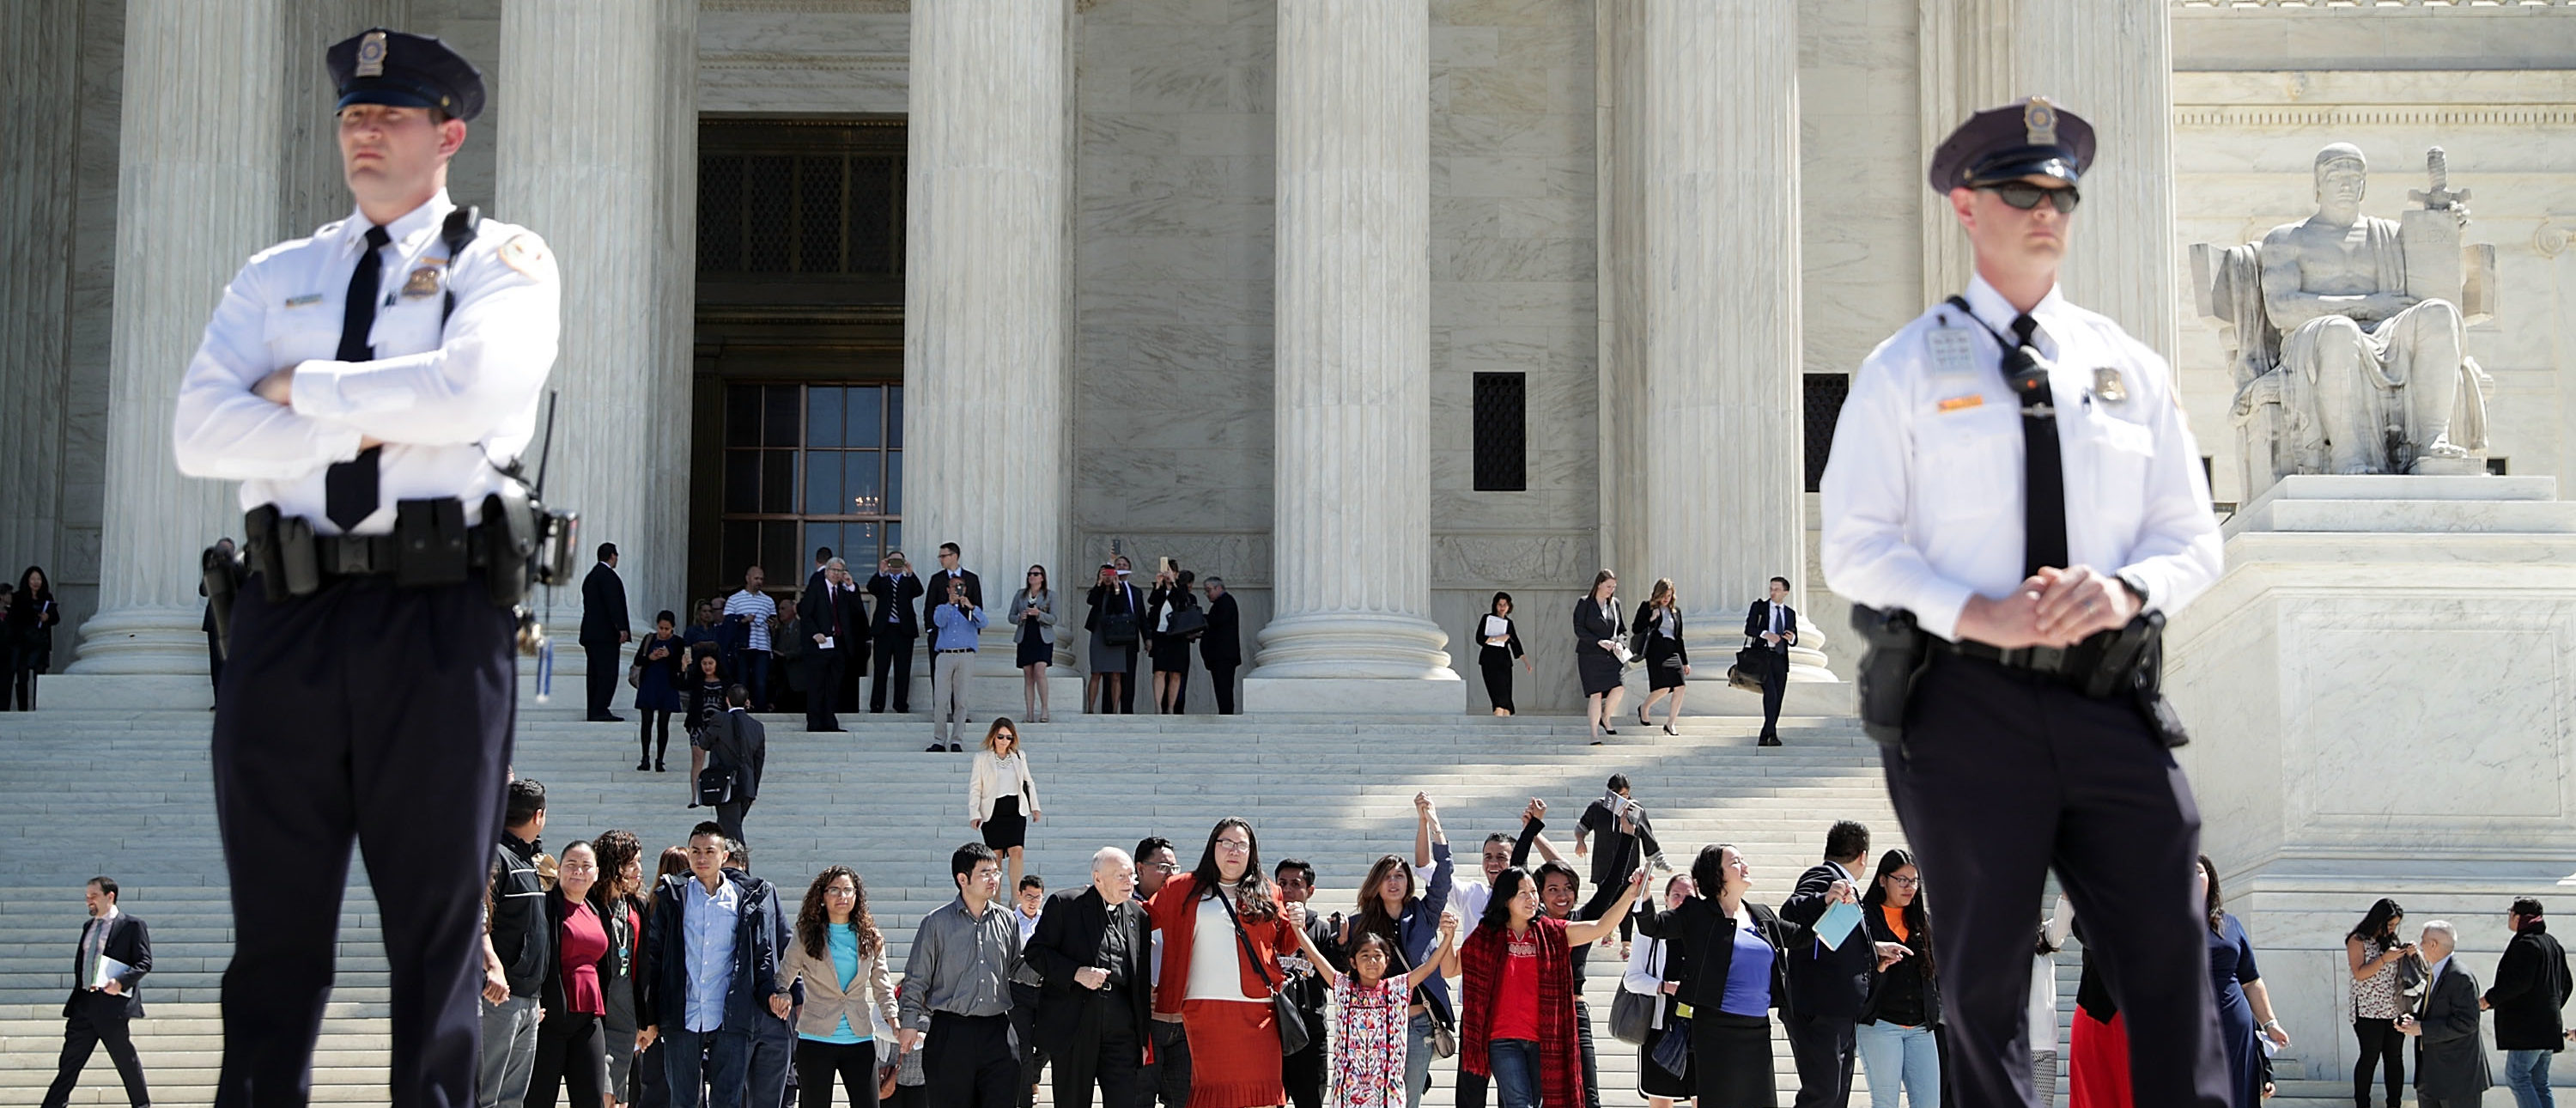 WASHINGTON, UNITED STATES - APRIL 18: Immigration supporters hold up their hands as they come out of the U.S. Supreme Court April 18, 2016 in Washington, DC. The Supreme Court heard oral arguments in the case of United States v. Texas, which is challenging President Obama's 2014 executive actions on immigration - the Deferred Action for Children Arrivals (DACA) and Deferred Action for Parents of American and Lawful Permanent Residents (DAPA) programs. (Photo by Alex Wong/Getty Images)